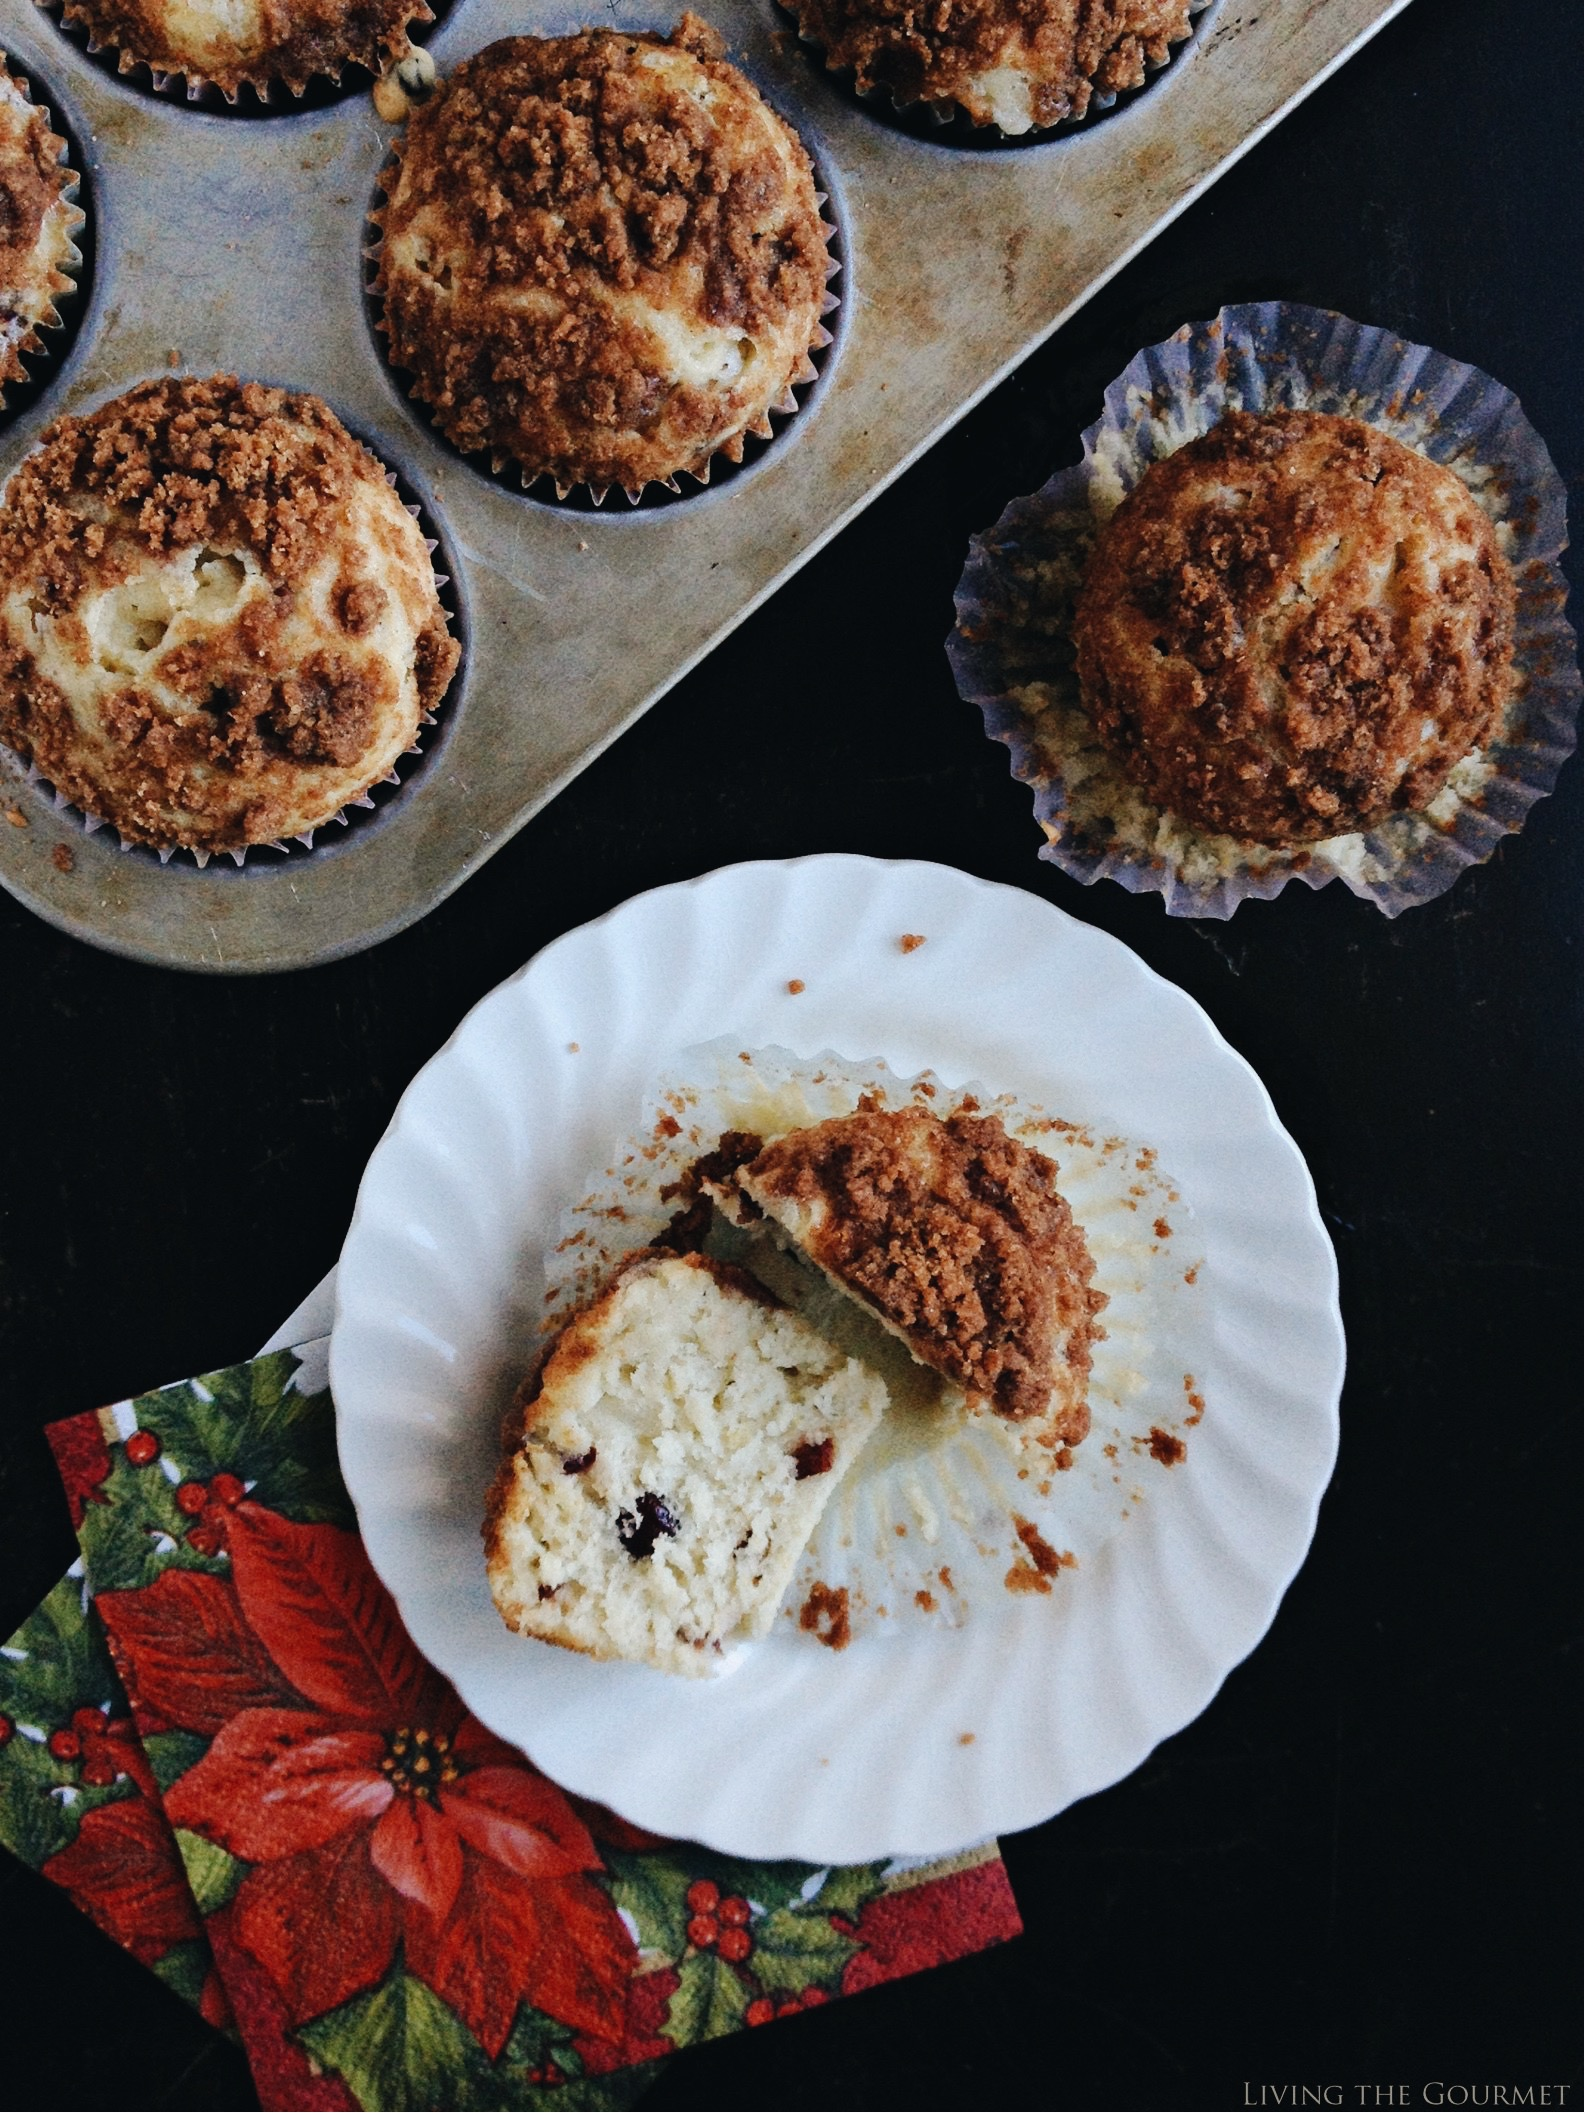 Living the Gourmet: Cranberry Cashew & Almond Milk Muffins #ad